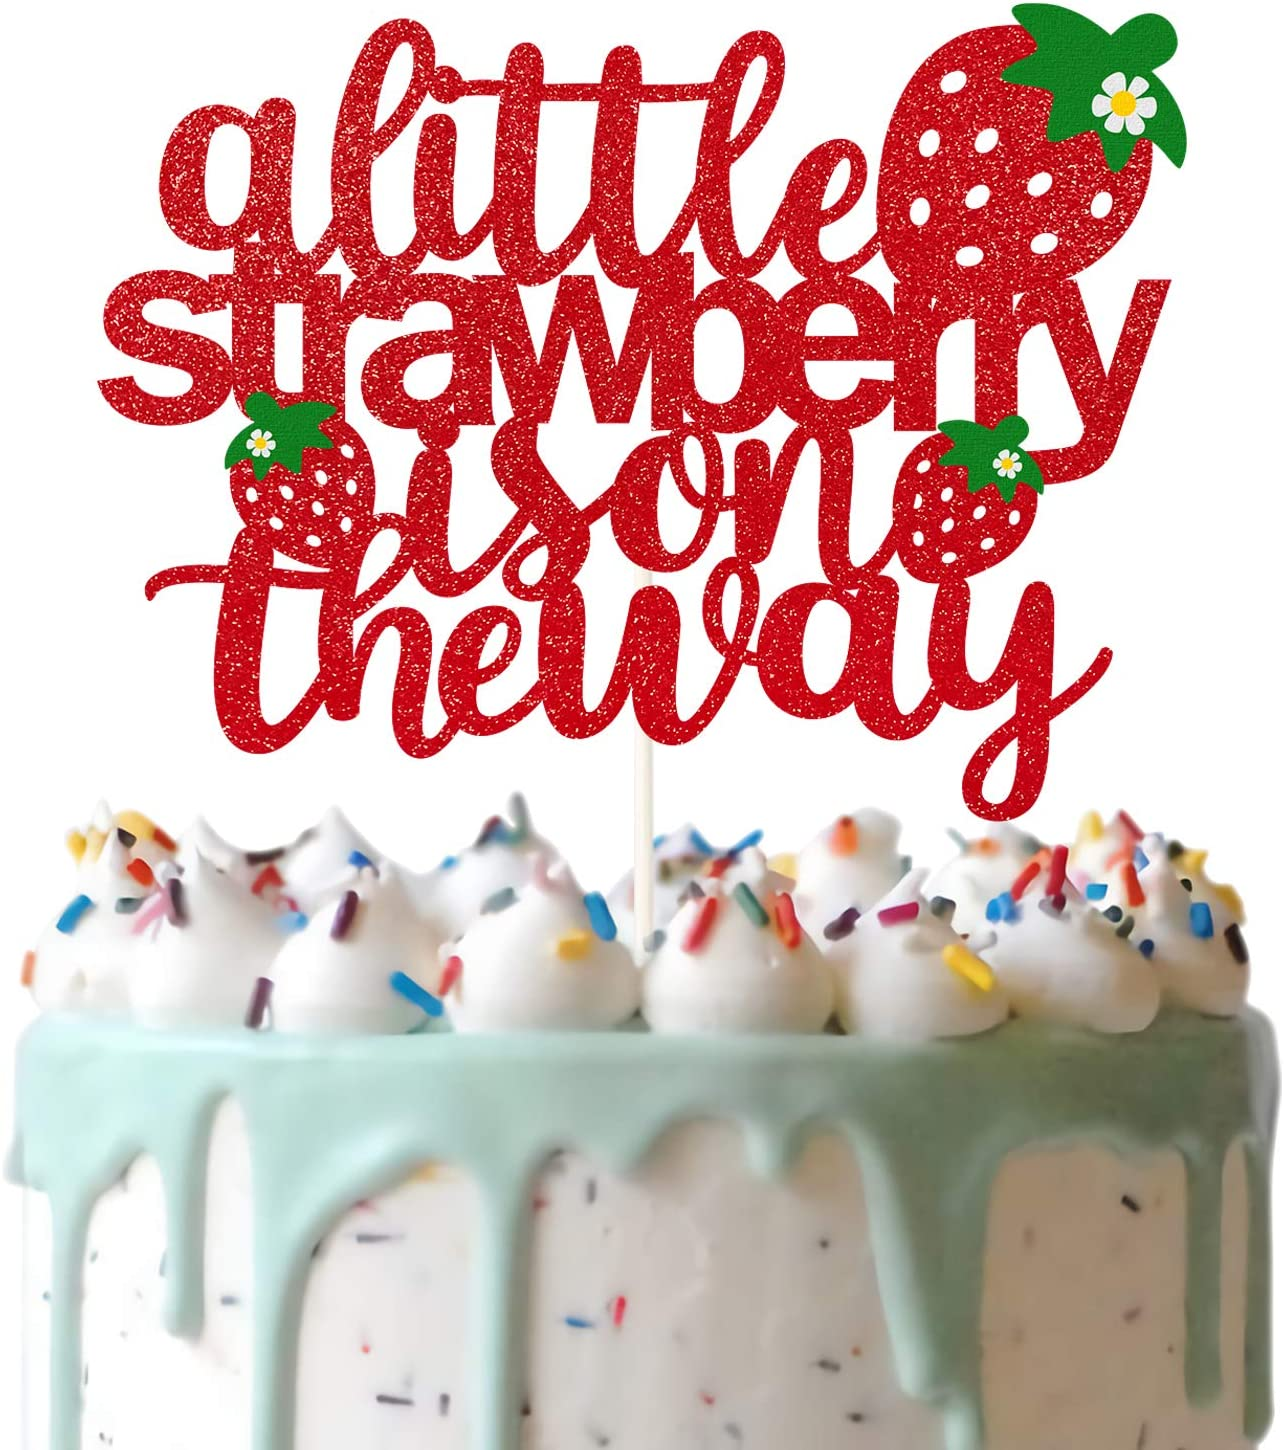 Glitter A Little Strawberry is on the Way Cake Topper, Strawberry Baby Shower Cake Decor, Summer Fruit Theme Gender Reveal Party, Garden Theme Pregnancy Announcement Supplies